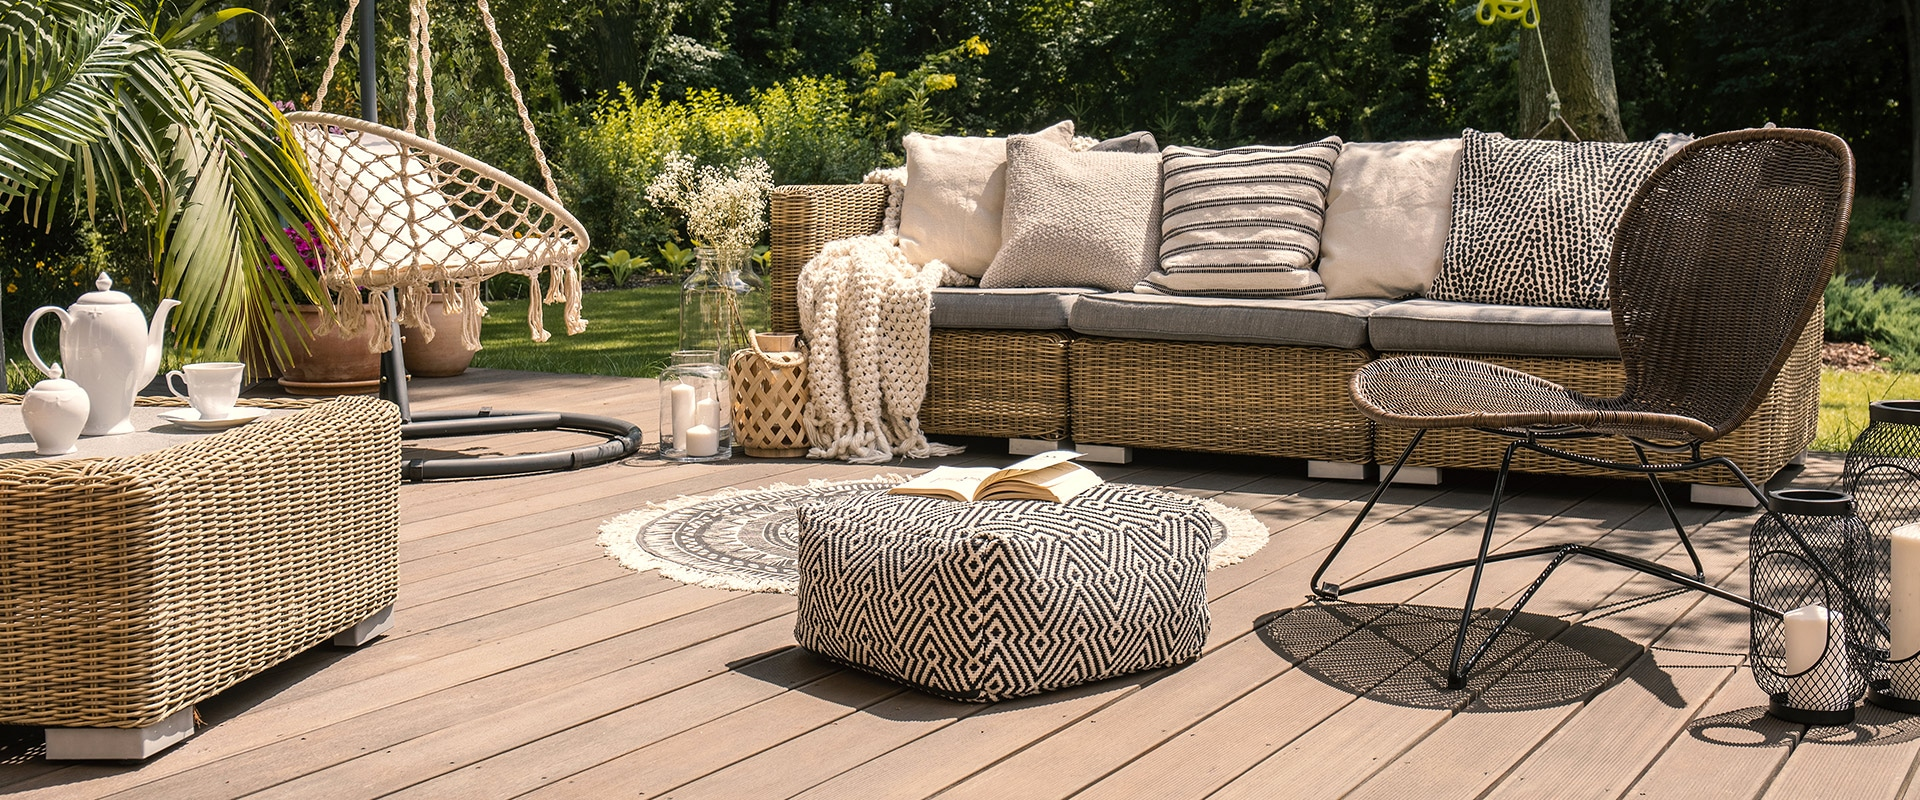 outdoor space or area